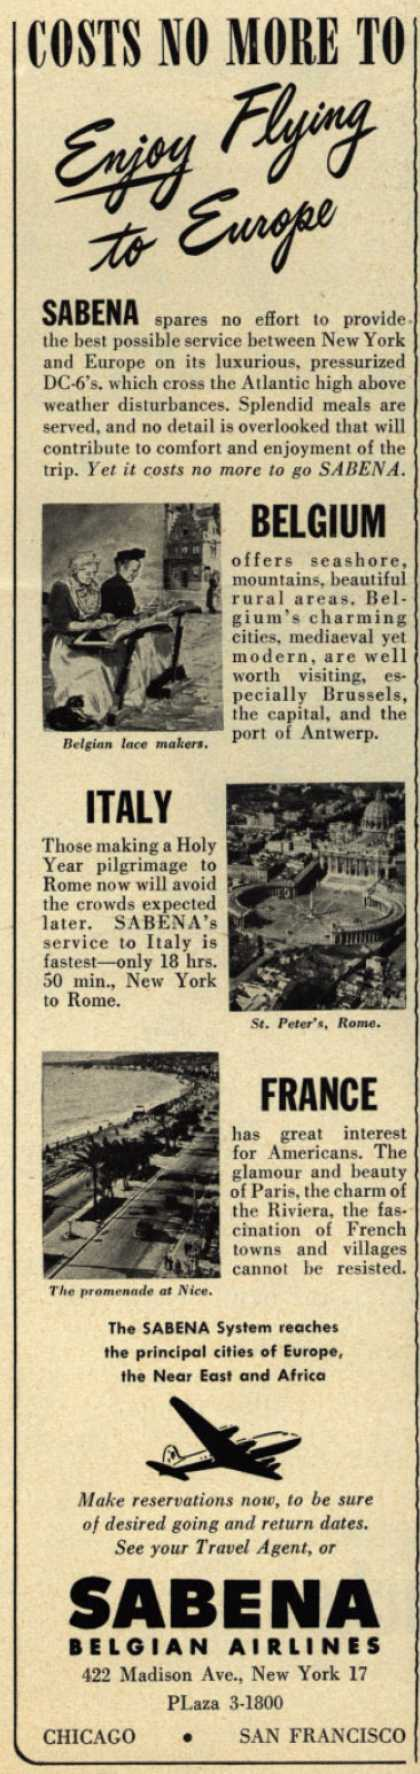 Sabena Belgian Airlines – Costs No More To Enjoy Flying to Europe (1950)